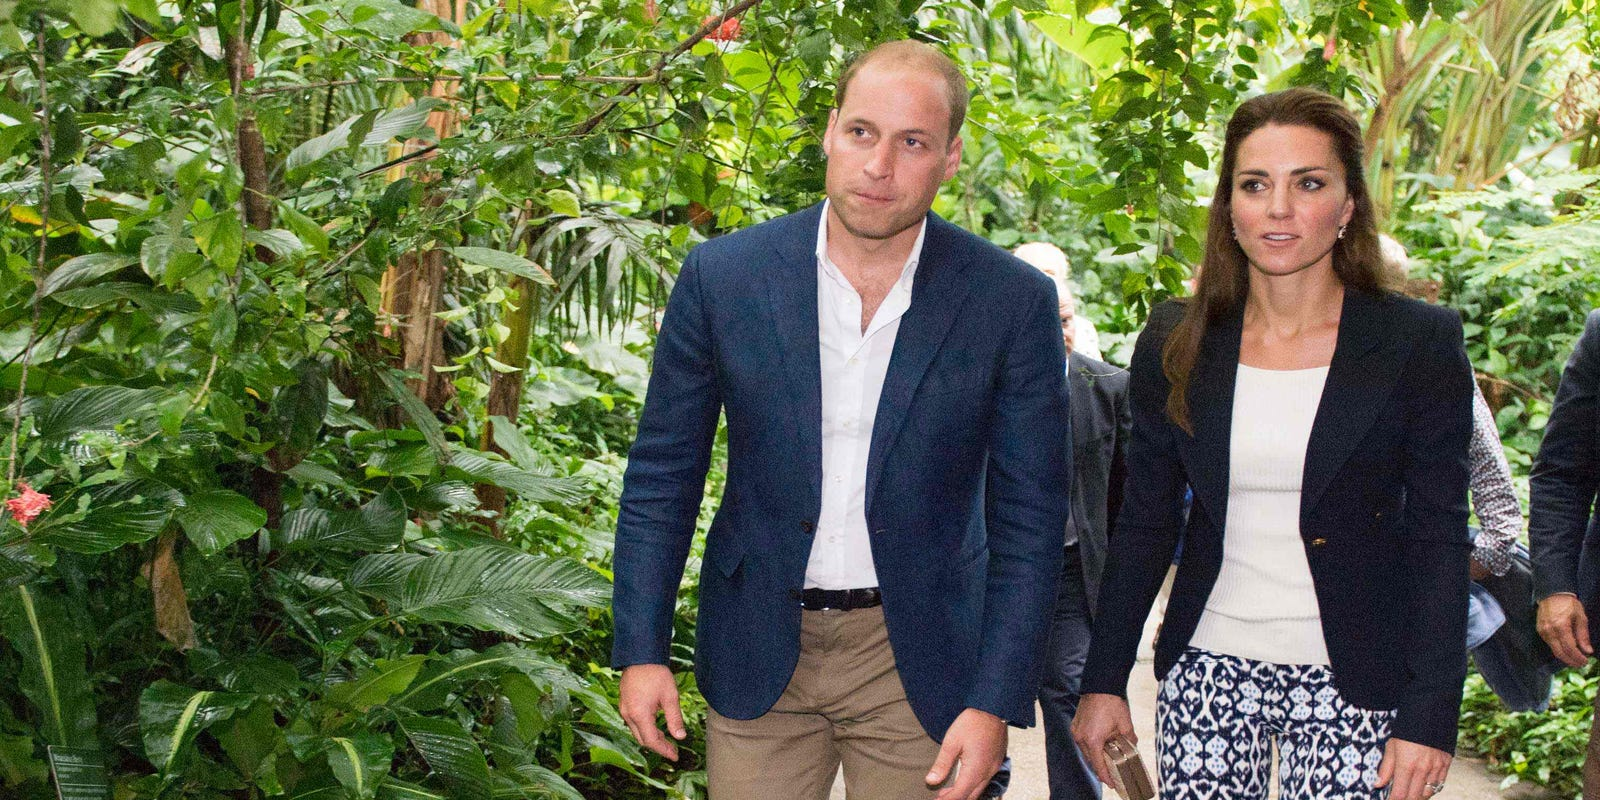 Duchess Kate Does Casual Friday In 30 Gap Pants